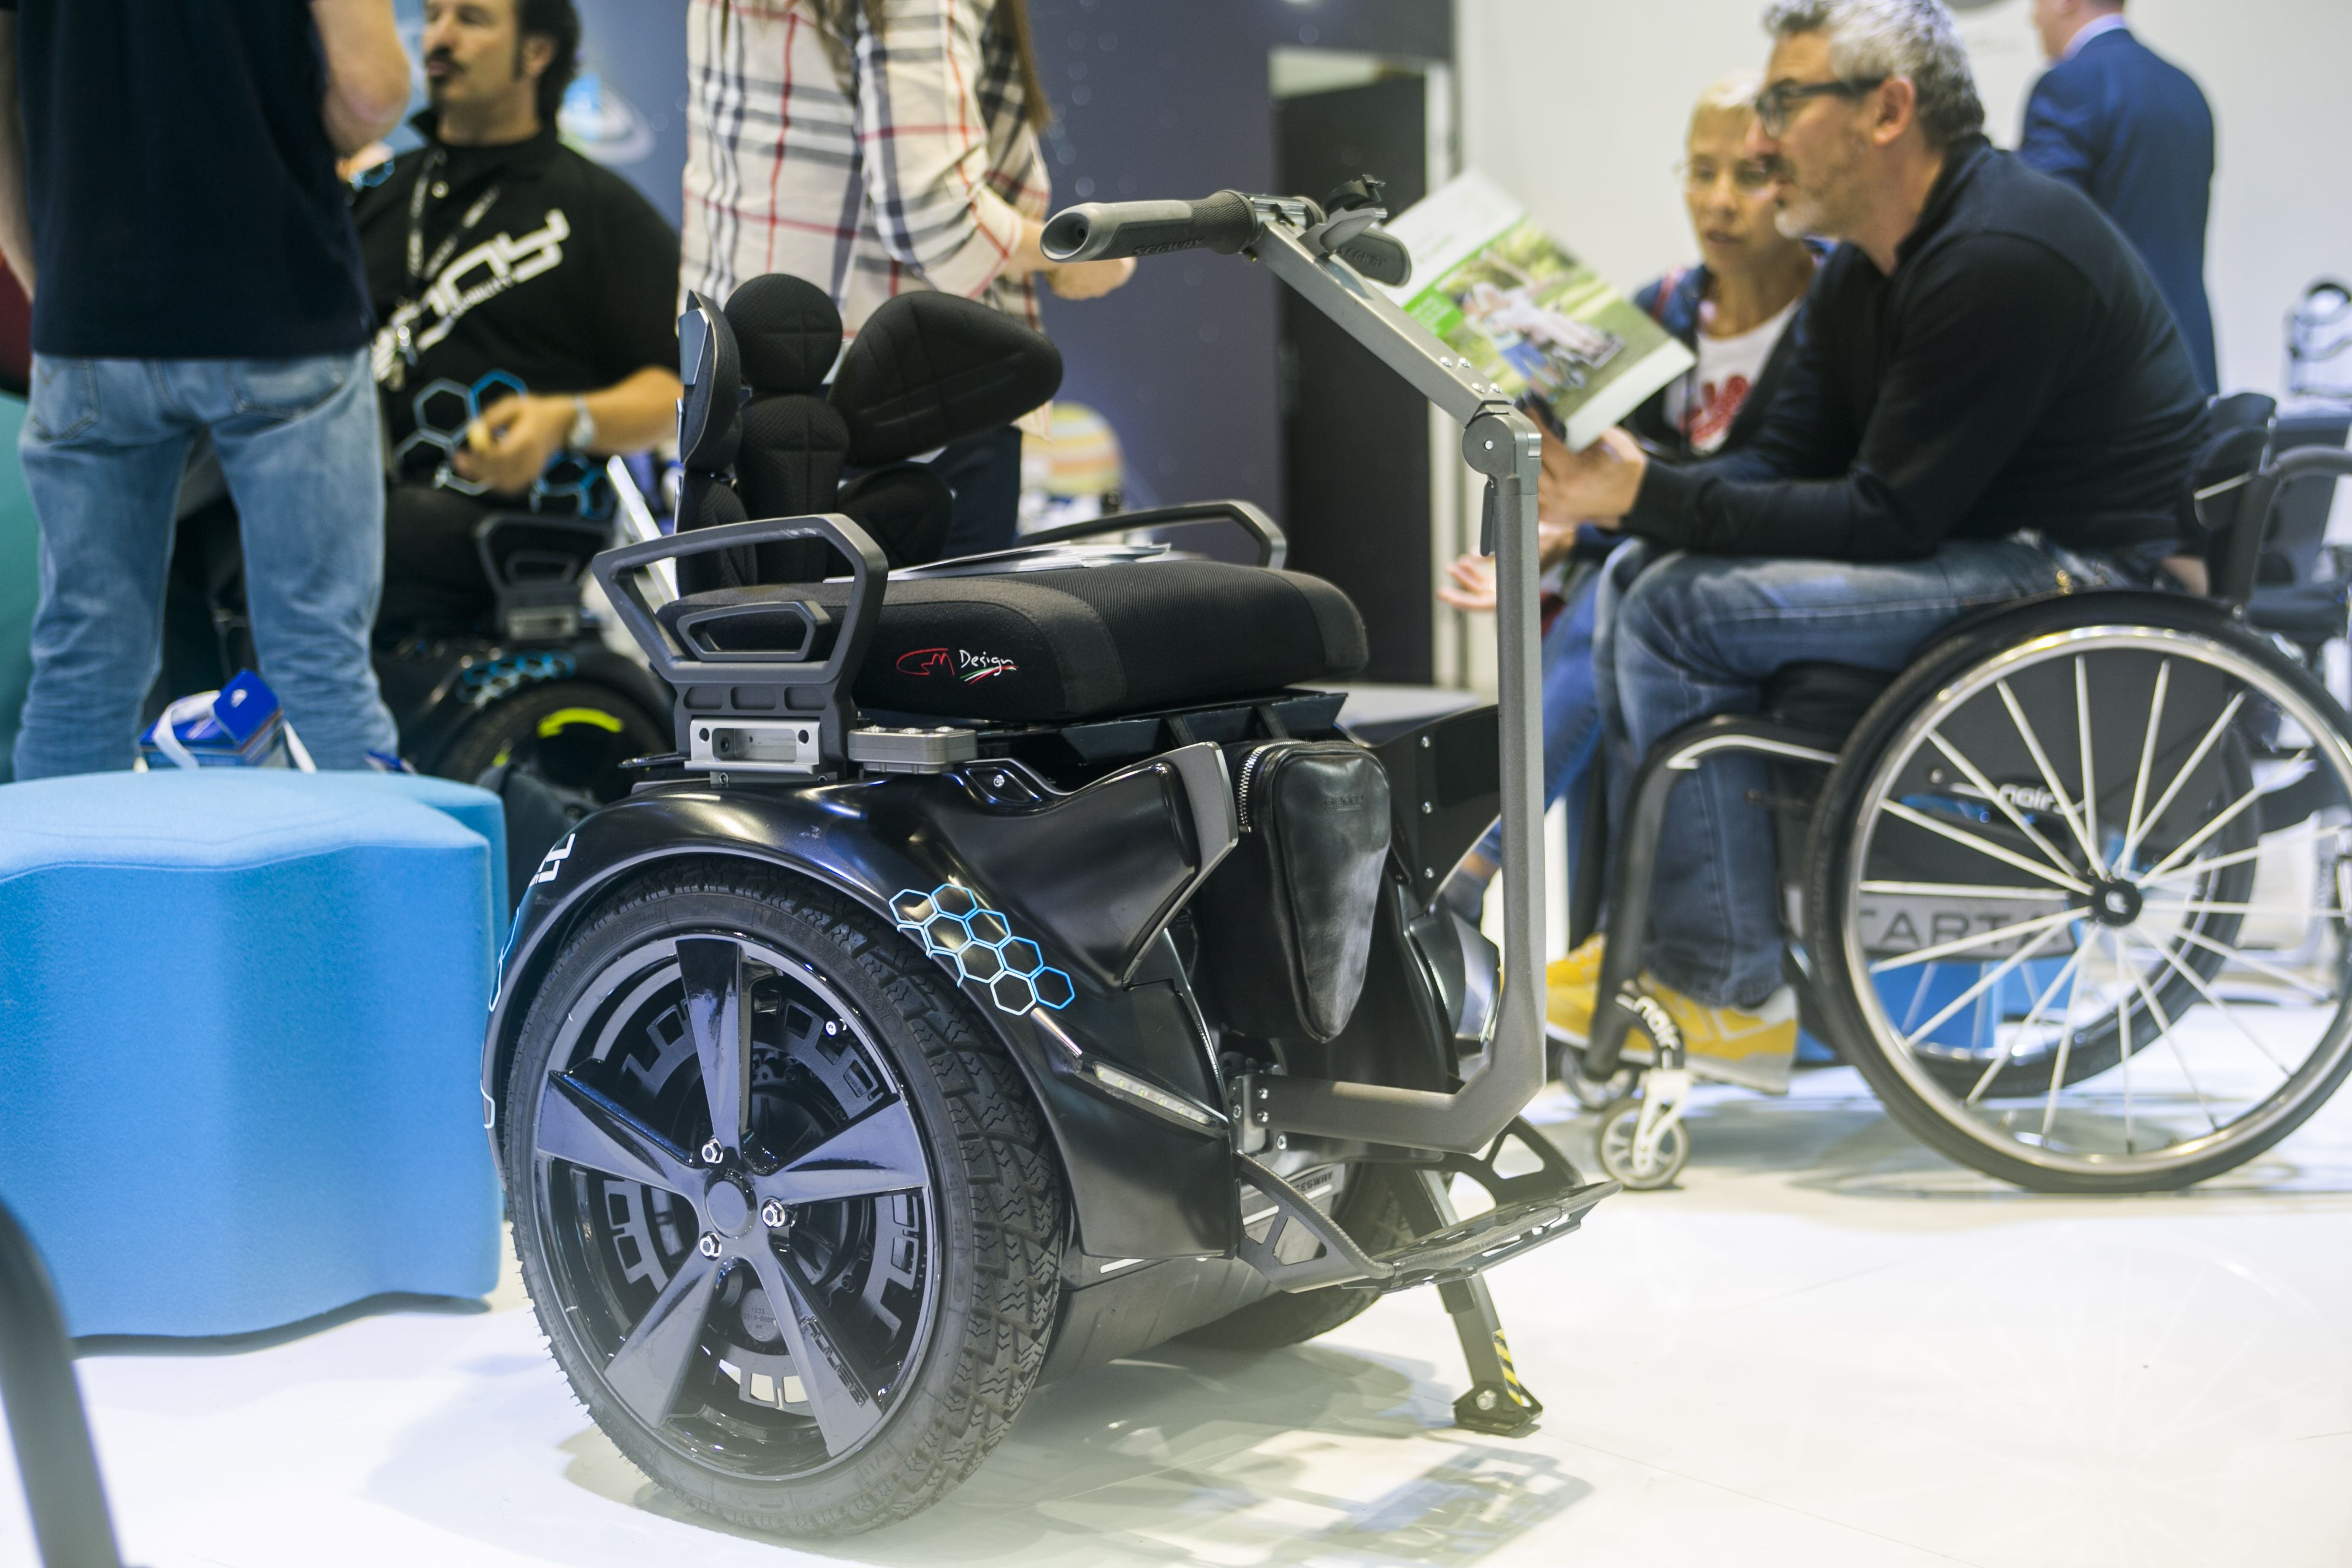 REHACARE INTERNATIONAL 2018 Motorcycle, Genny, Vehicles